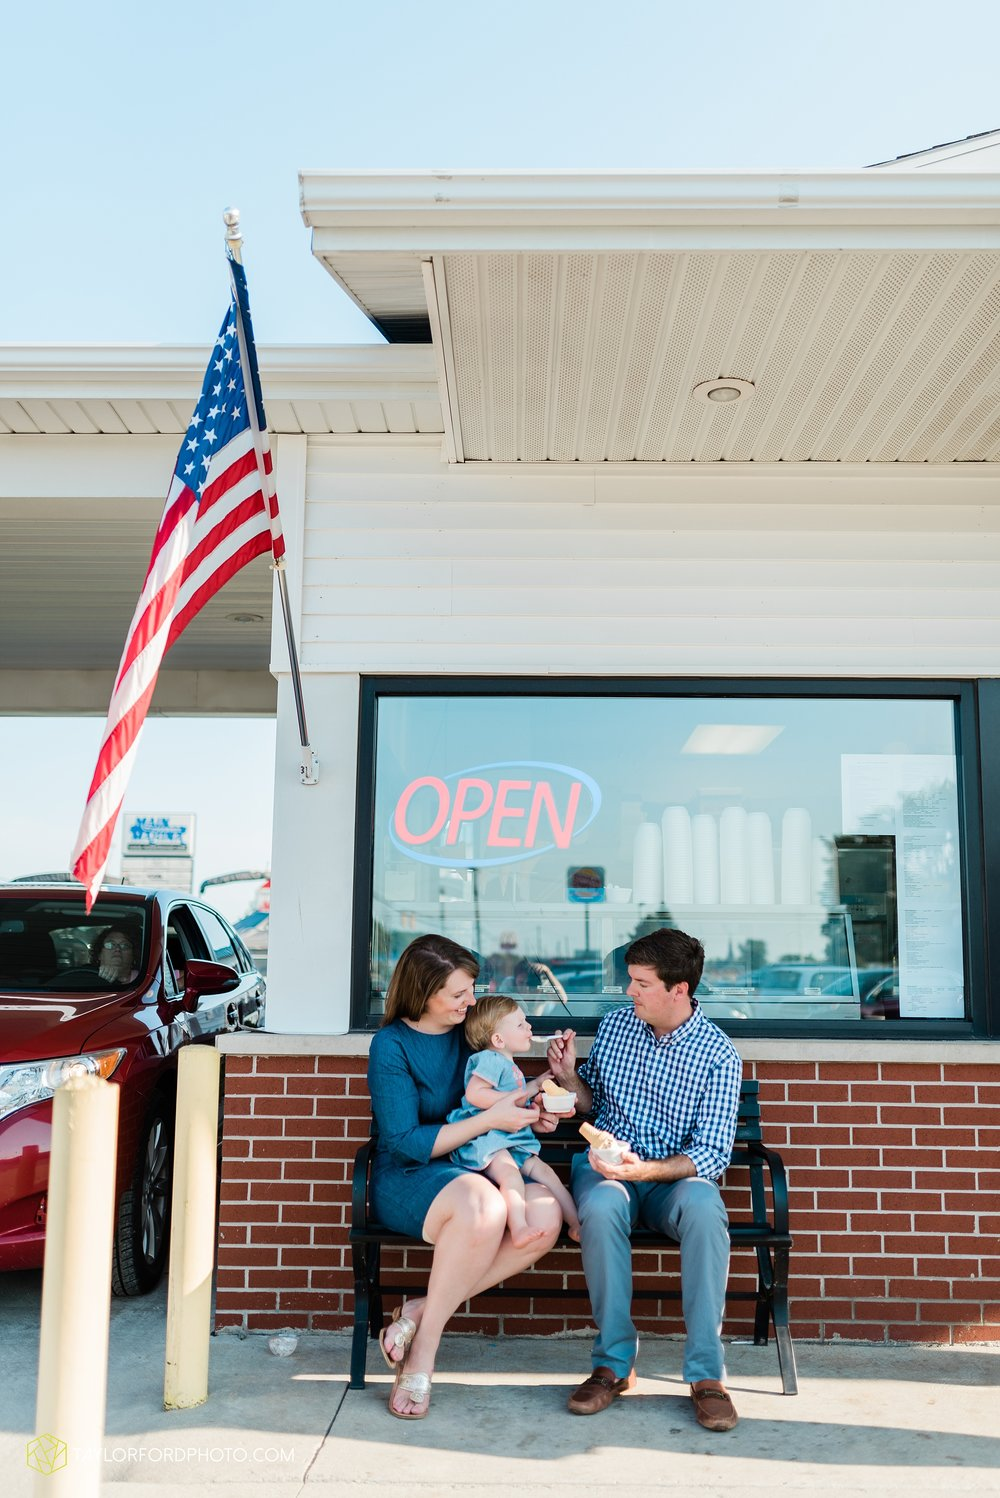 the-harrelsons-lake-wawasee-syracuse-indiana-lakeside-park-joes-ice-cream-supreme-family-photographer-taylor-ford-photographer_9133.jpg